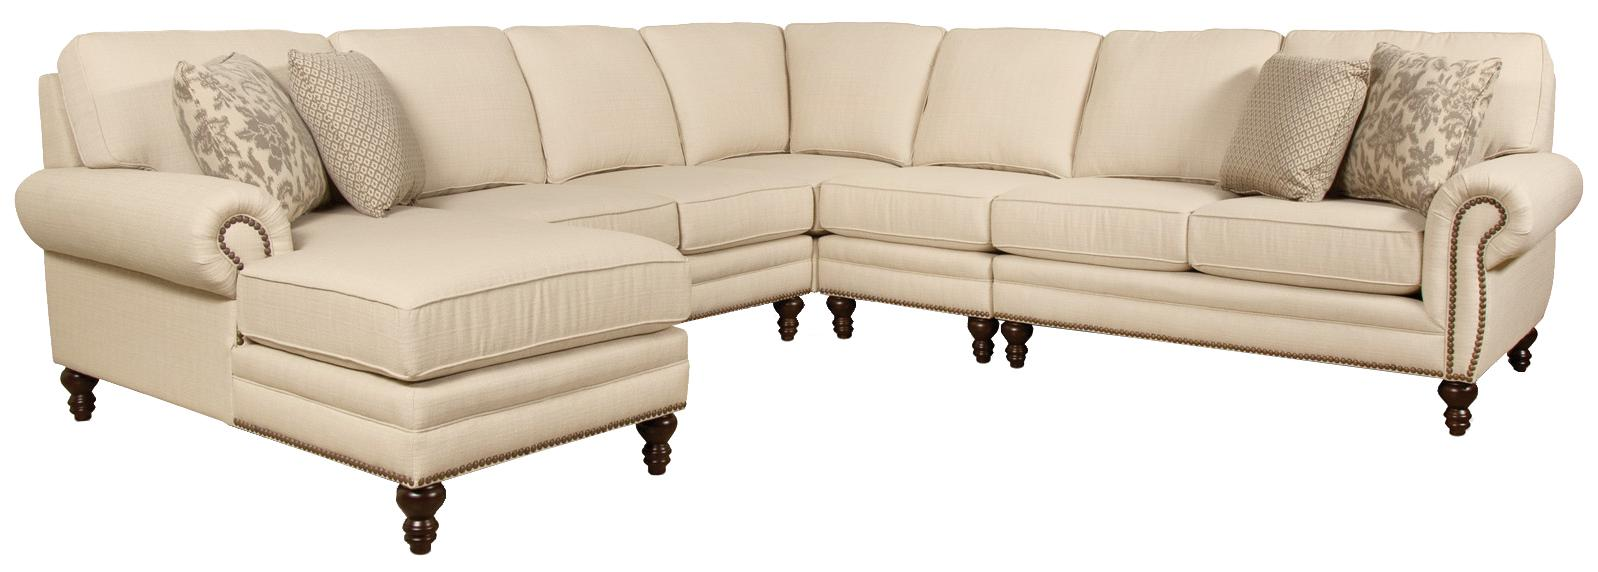 Seven Seat Sectional with Left Chaise